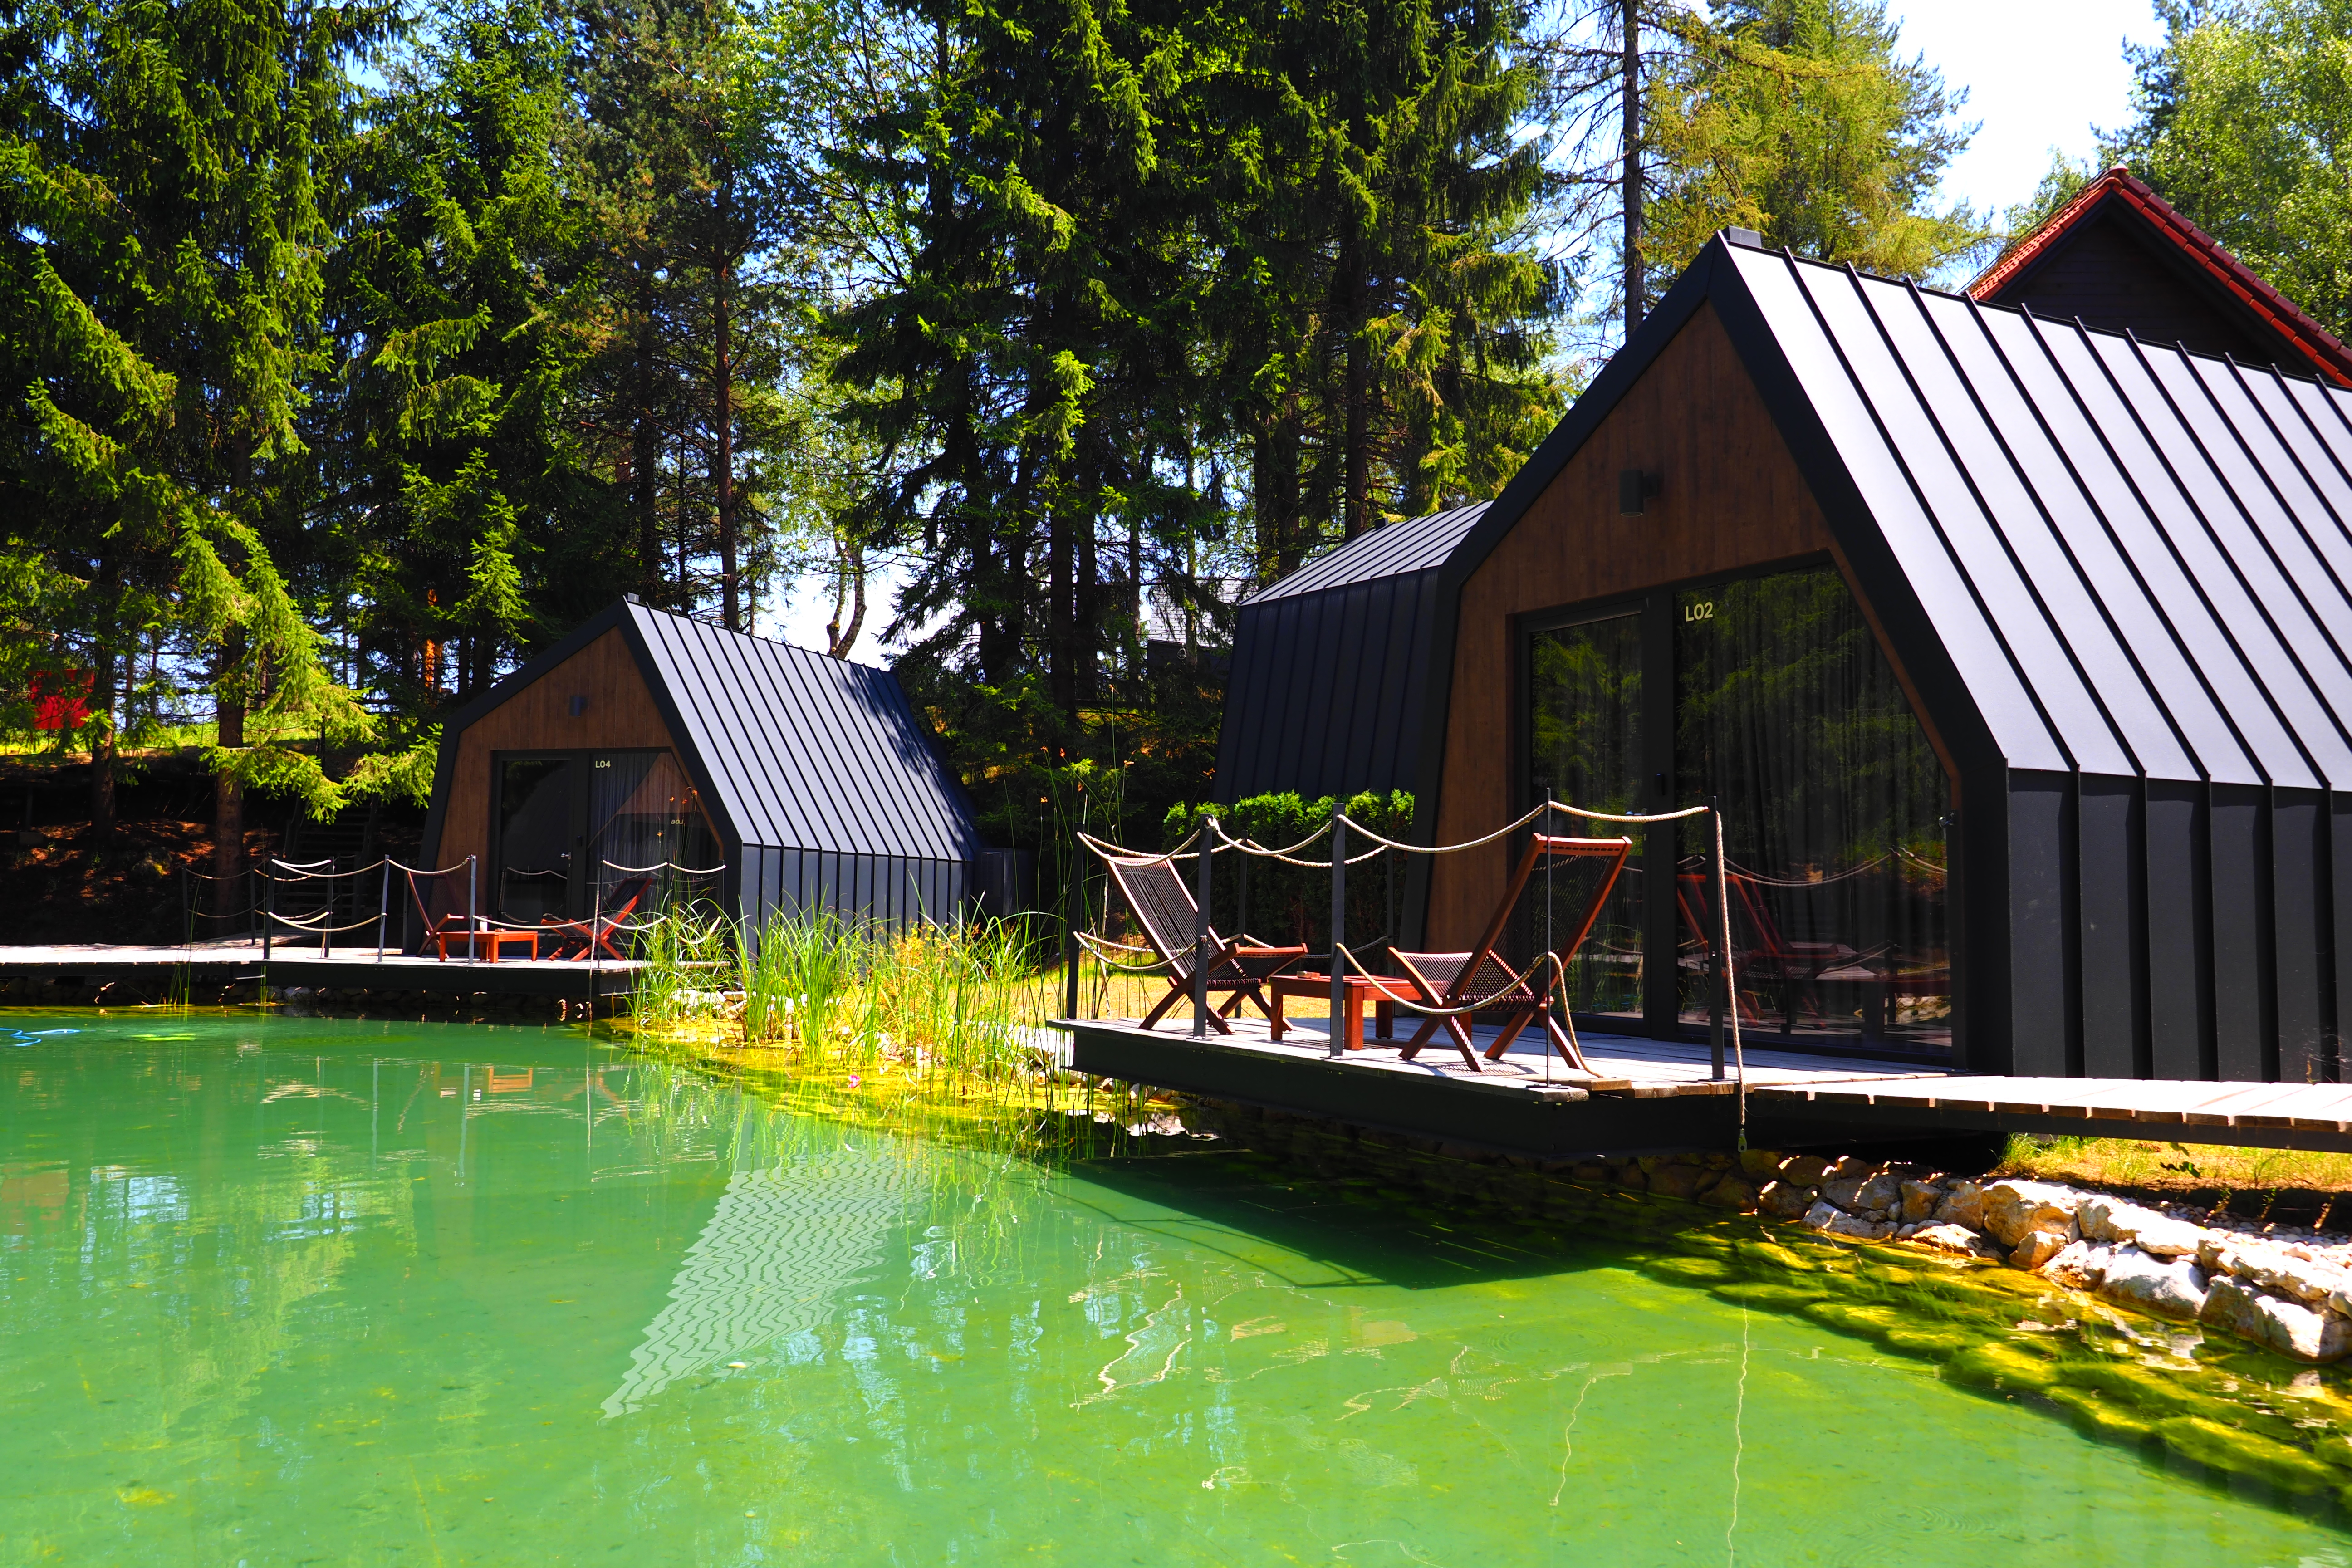 plitvice holiday resort_Häuser am See